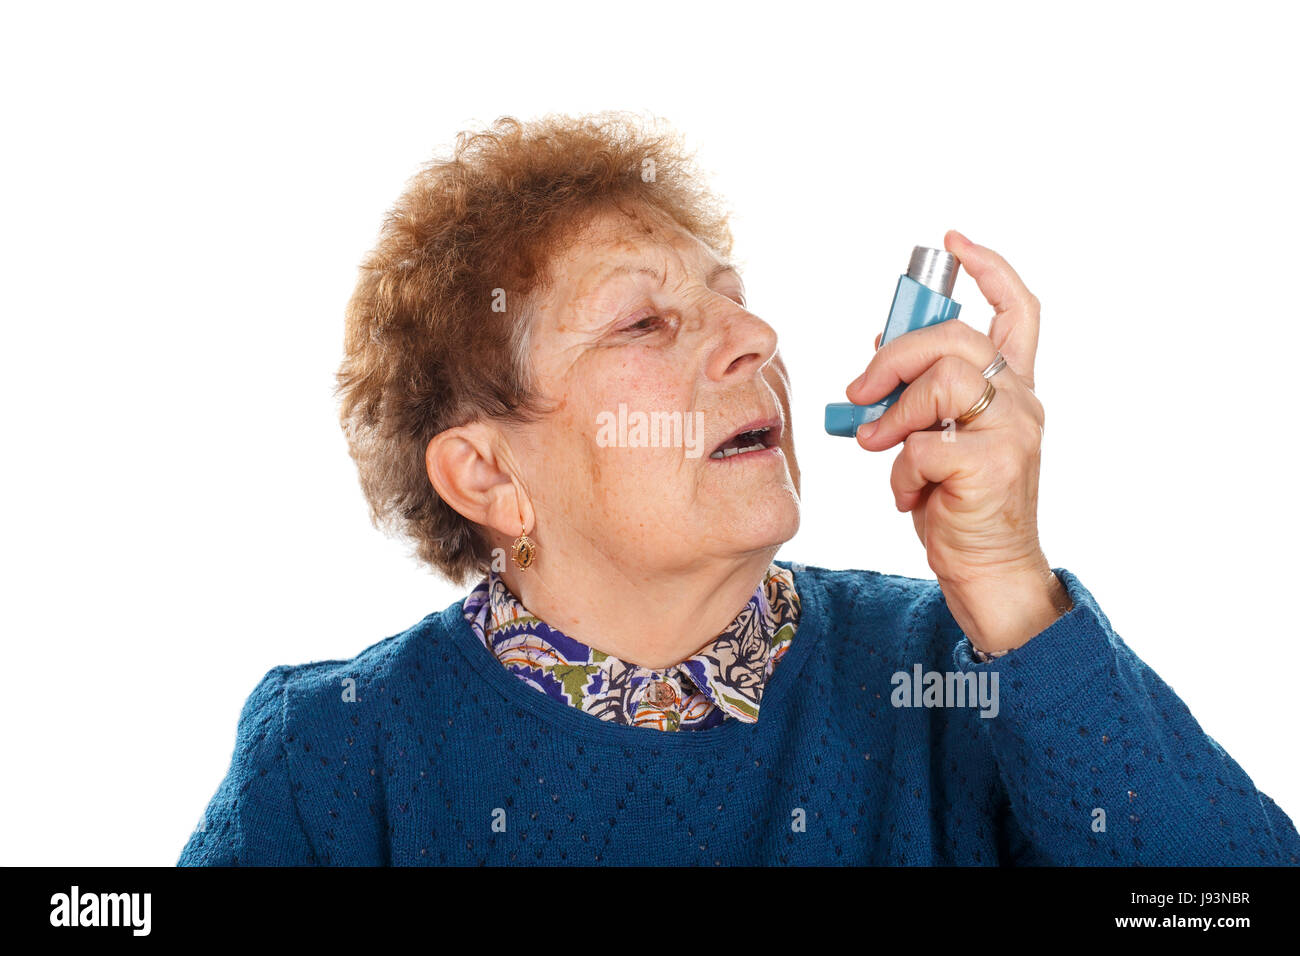 Picture of an elderly woman using an inhaler beacuse of an asthma attack - Stock Image